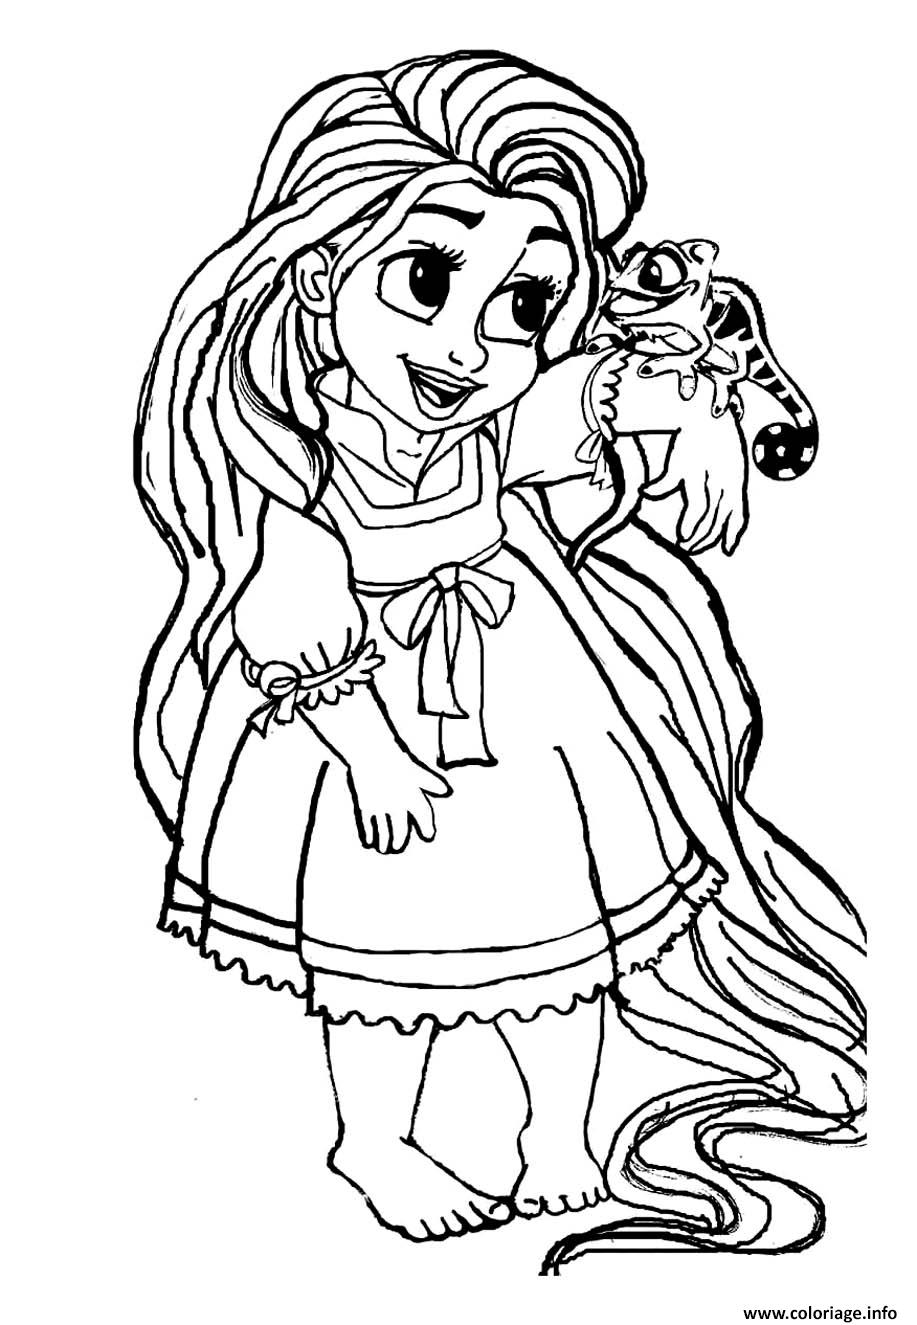 Coloriage bebe raiponce princesse disney cute - Coloriage disney ...